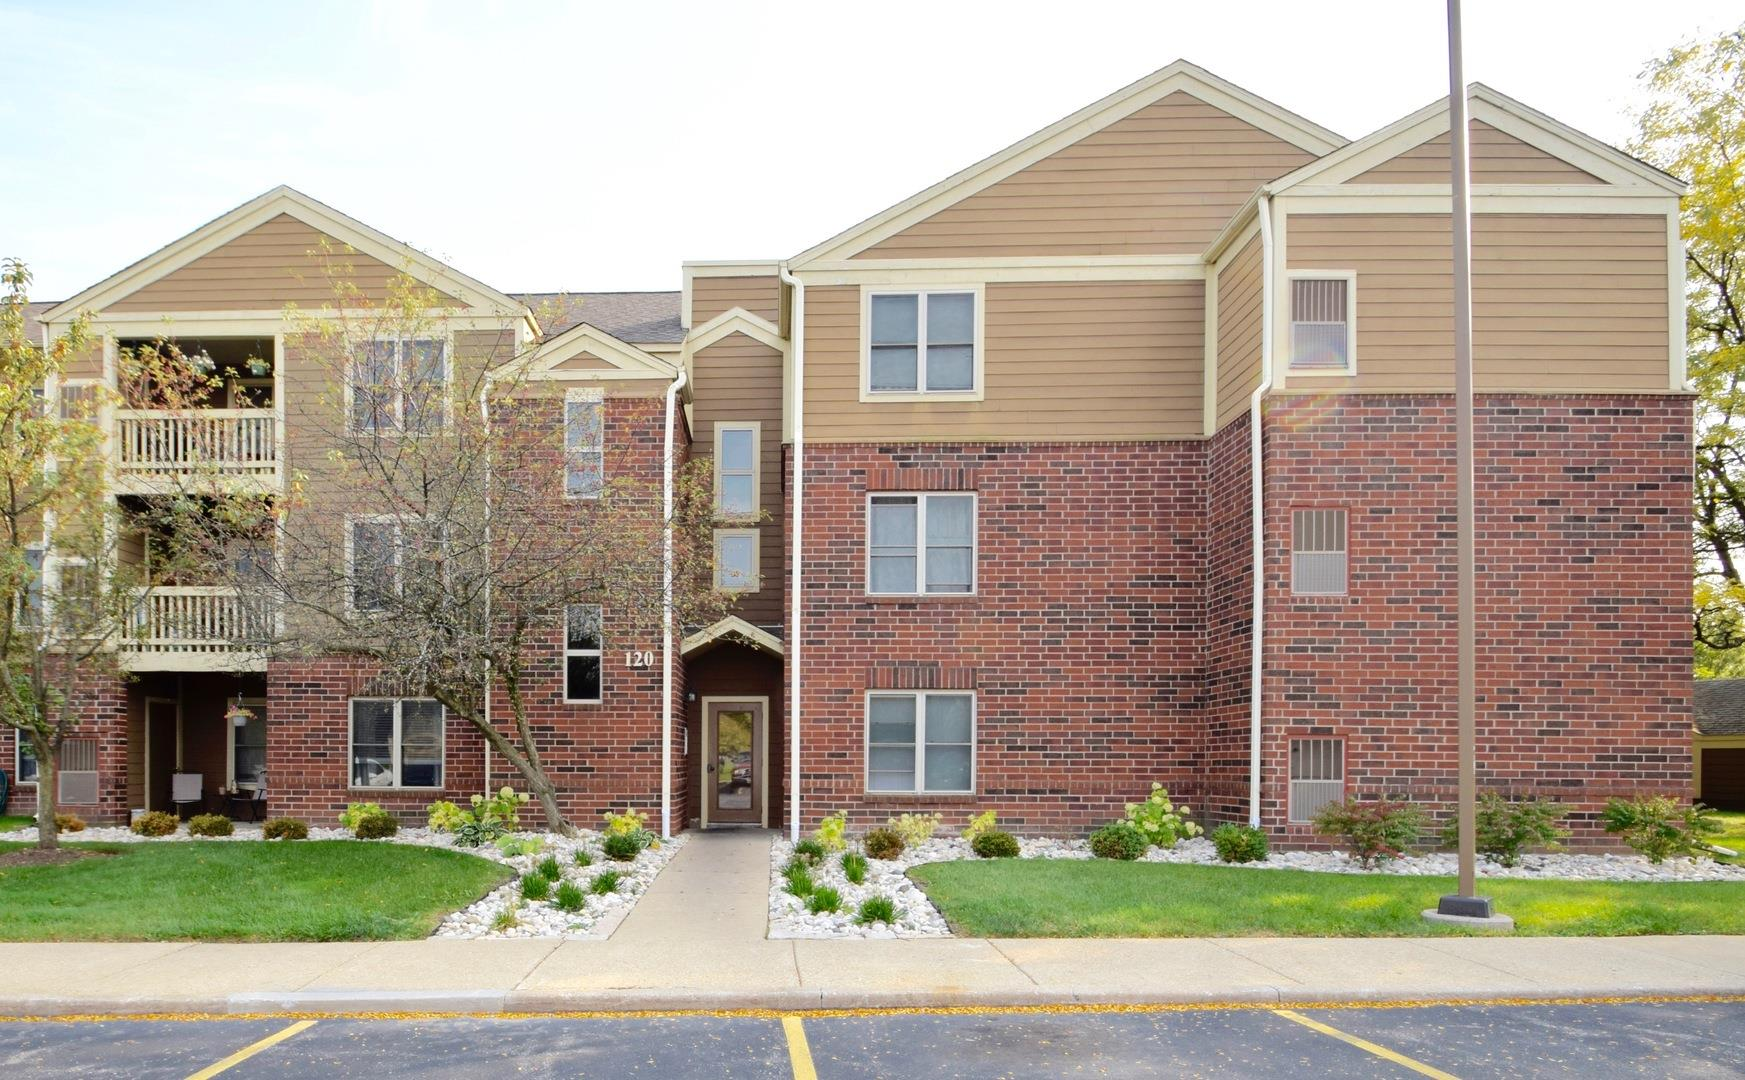 120 Glengarry Drive #212, Bloomingdale, IL 60108 - #: 10882912